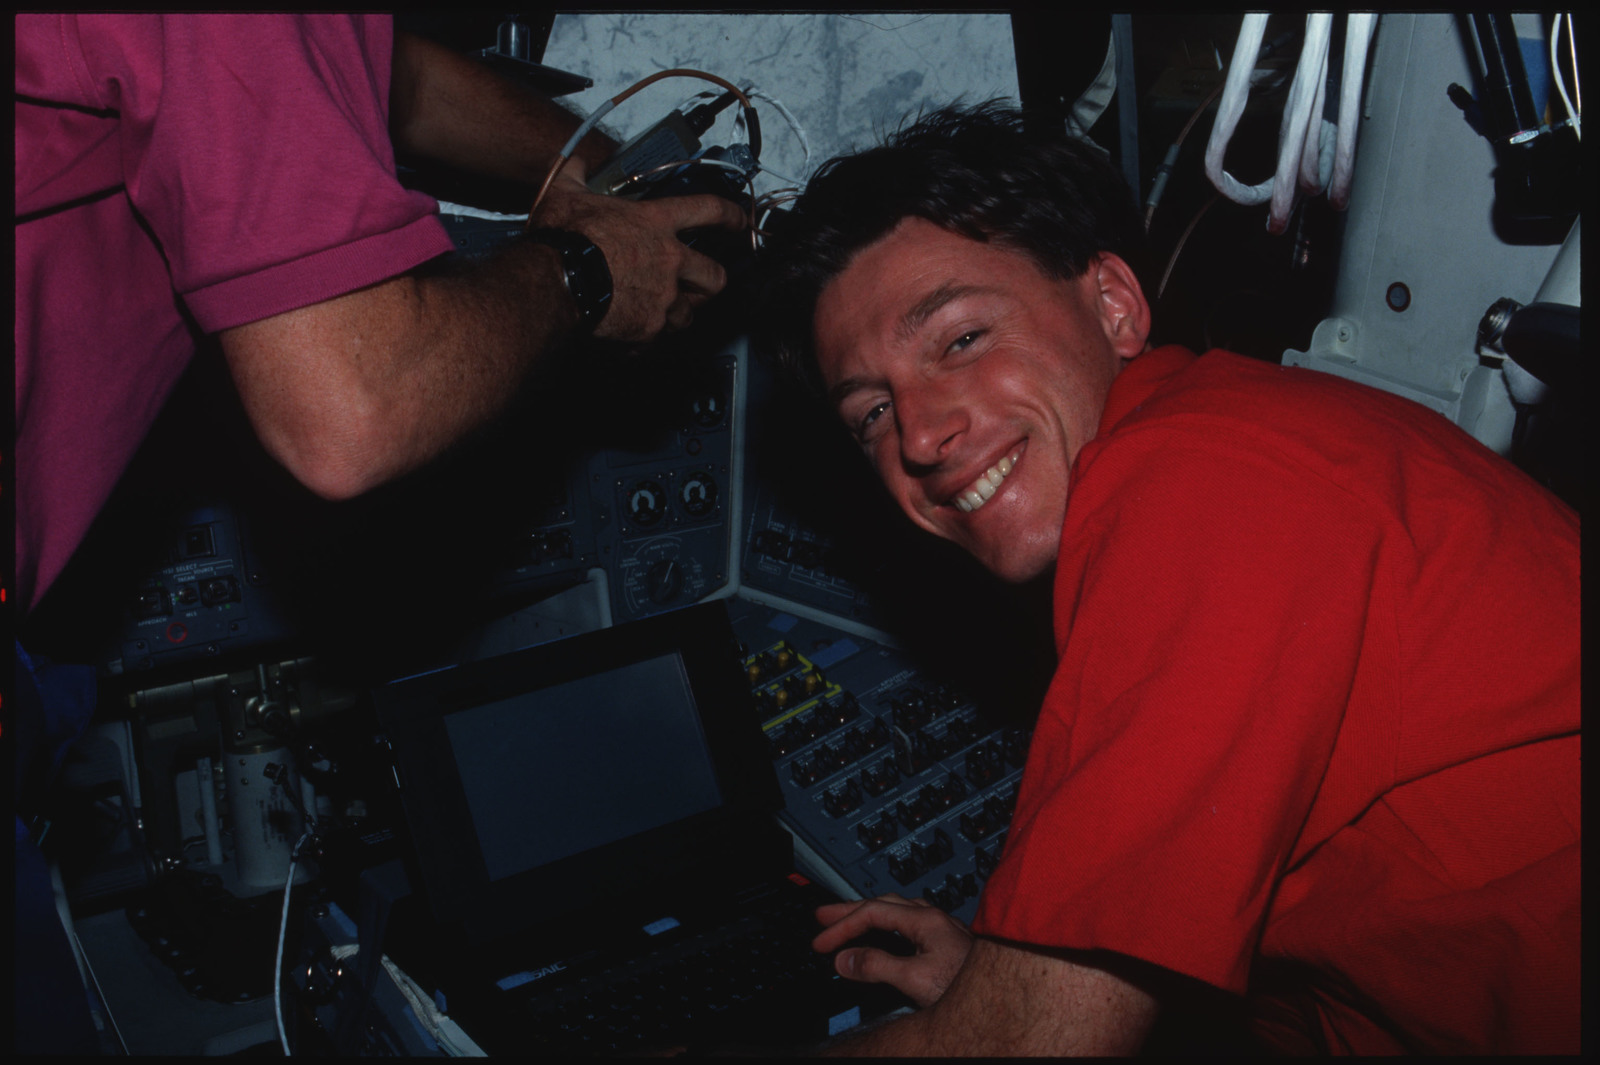 S45-17-017 - STS-045 - Mission Specialists Foale and Leesma on flight deck of Atlantis